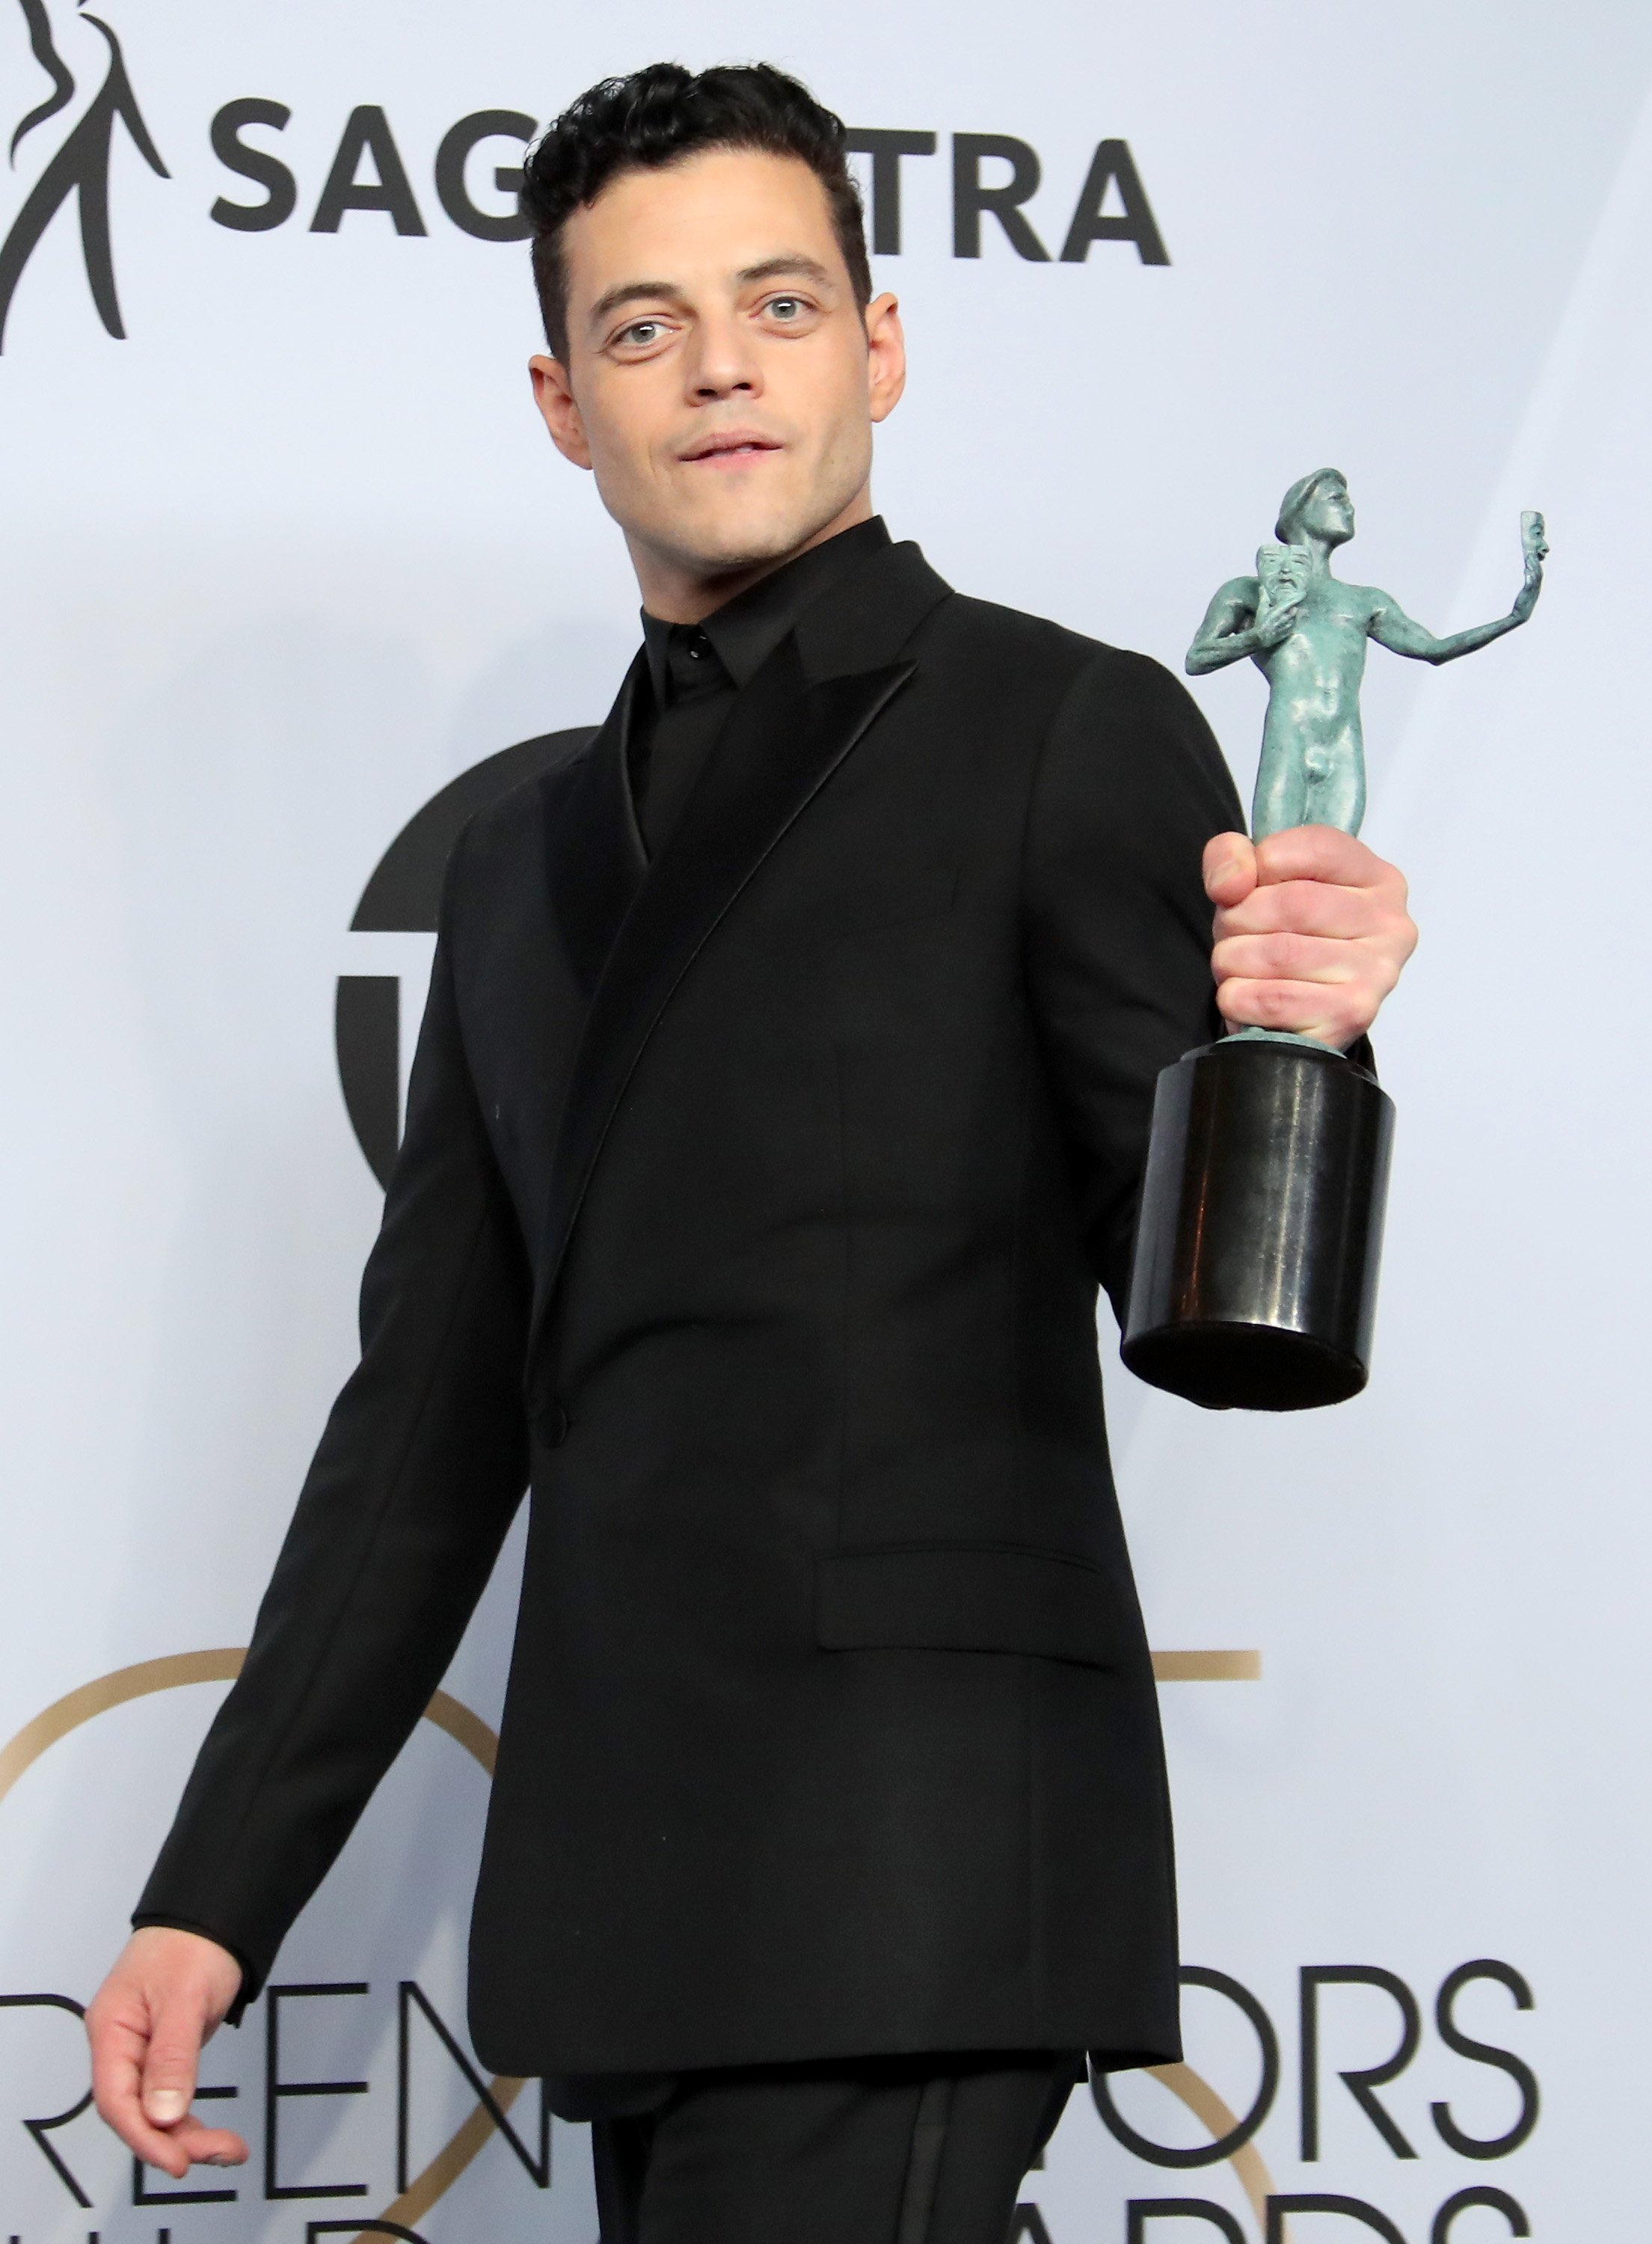 Image Credits: Getty Images / Dan MacMedan | Rami Malek, winner of Outstanding Performance by a Male Actor in a Leading Role in 'Bohemian Rhapsody,' poses in the press room during the 25th Annual Screen Actors Guild Awards at The Shrine Auditorium on January 27, 2019 in Los Angeles, California.